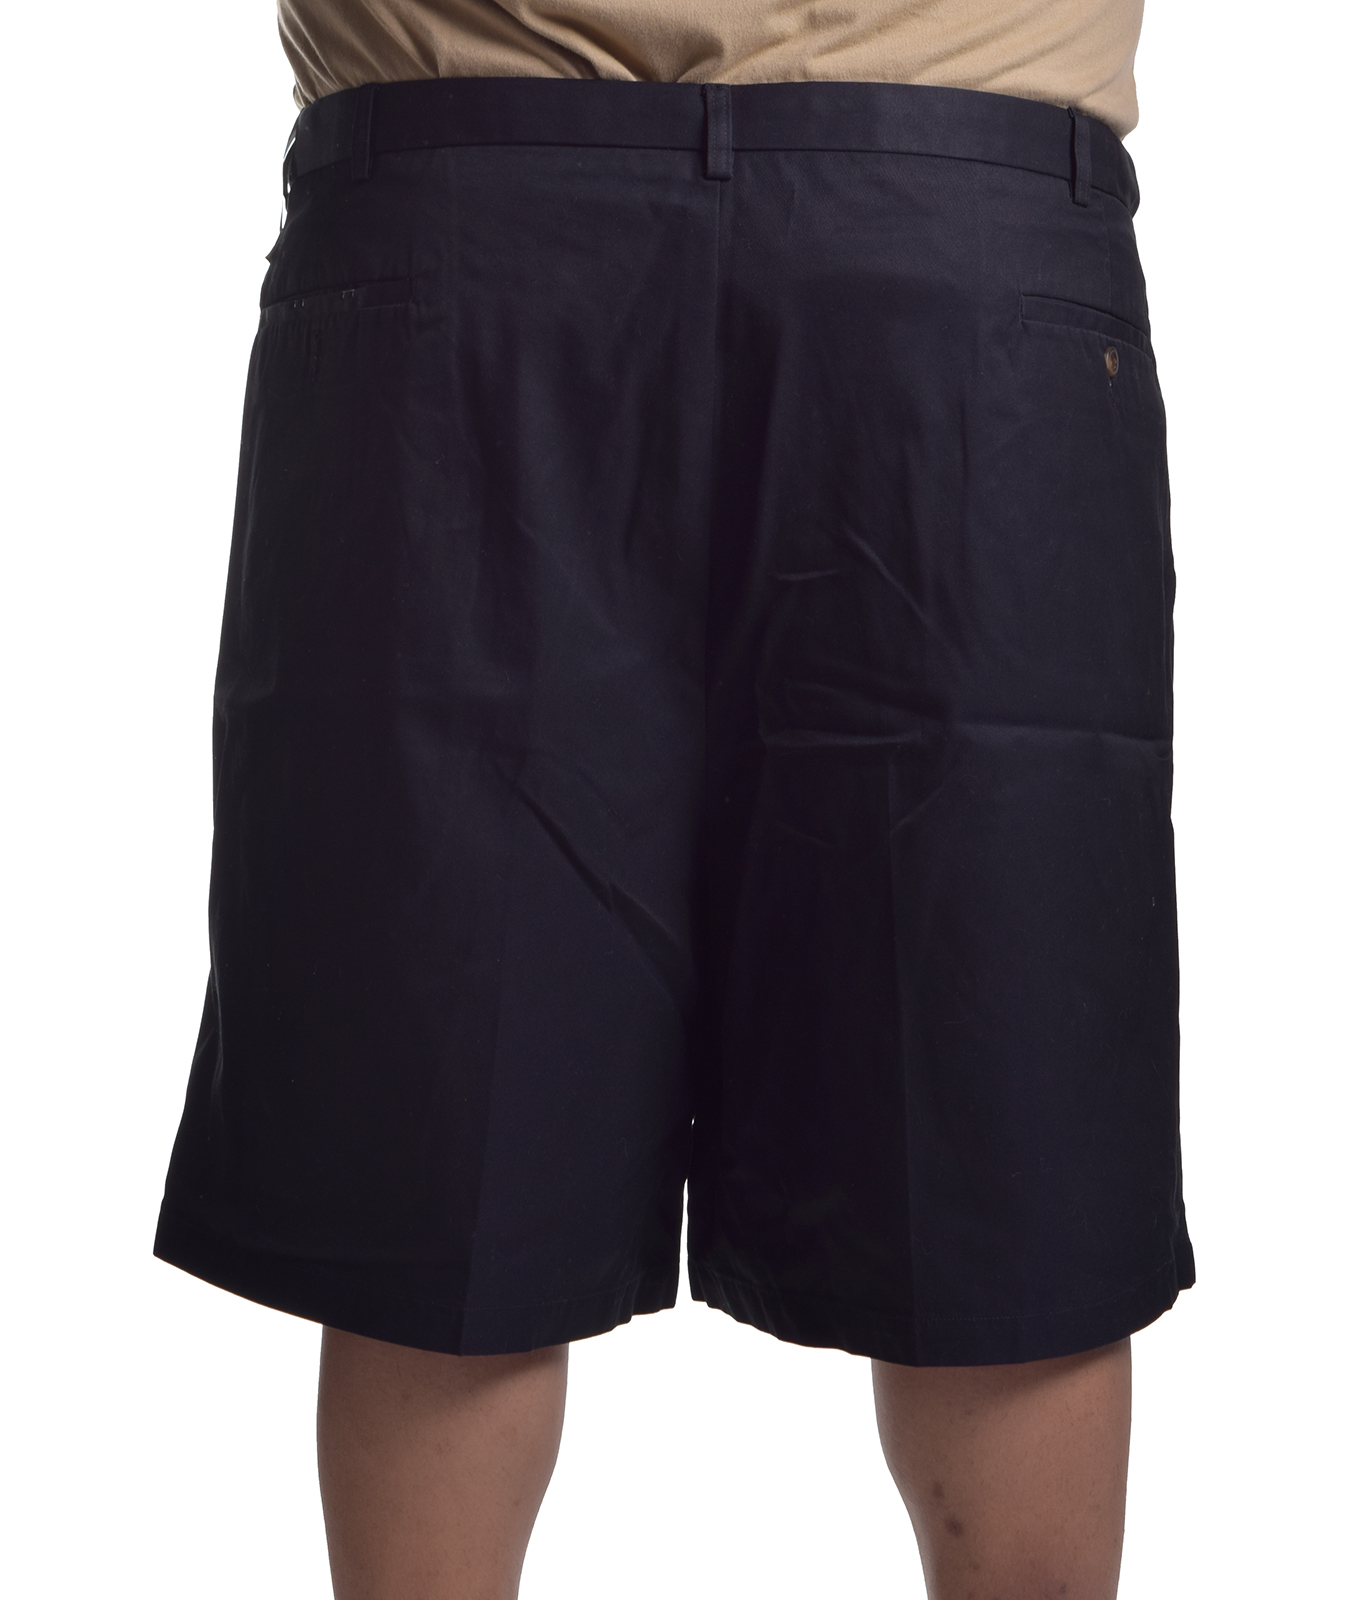 Big & Tall Men's Shorts. When it comes to special sizes, Kohl's is the place to shop! With our vast selection of Big & Tall Shorts, you'll find the right addition to your everyday look.